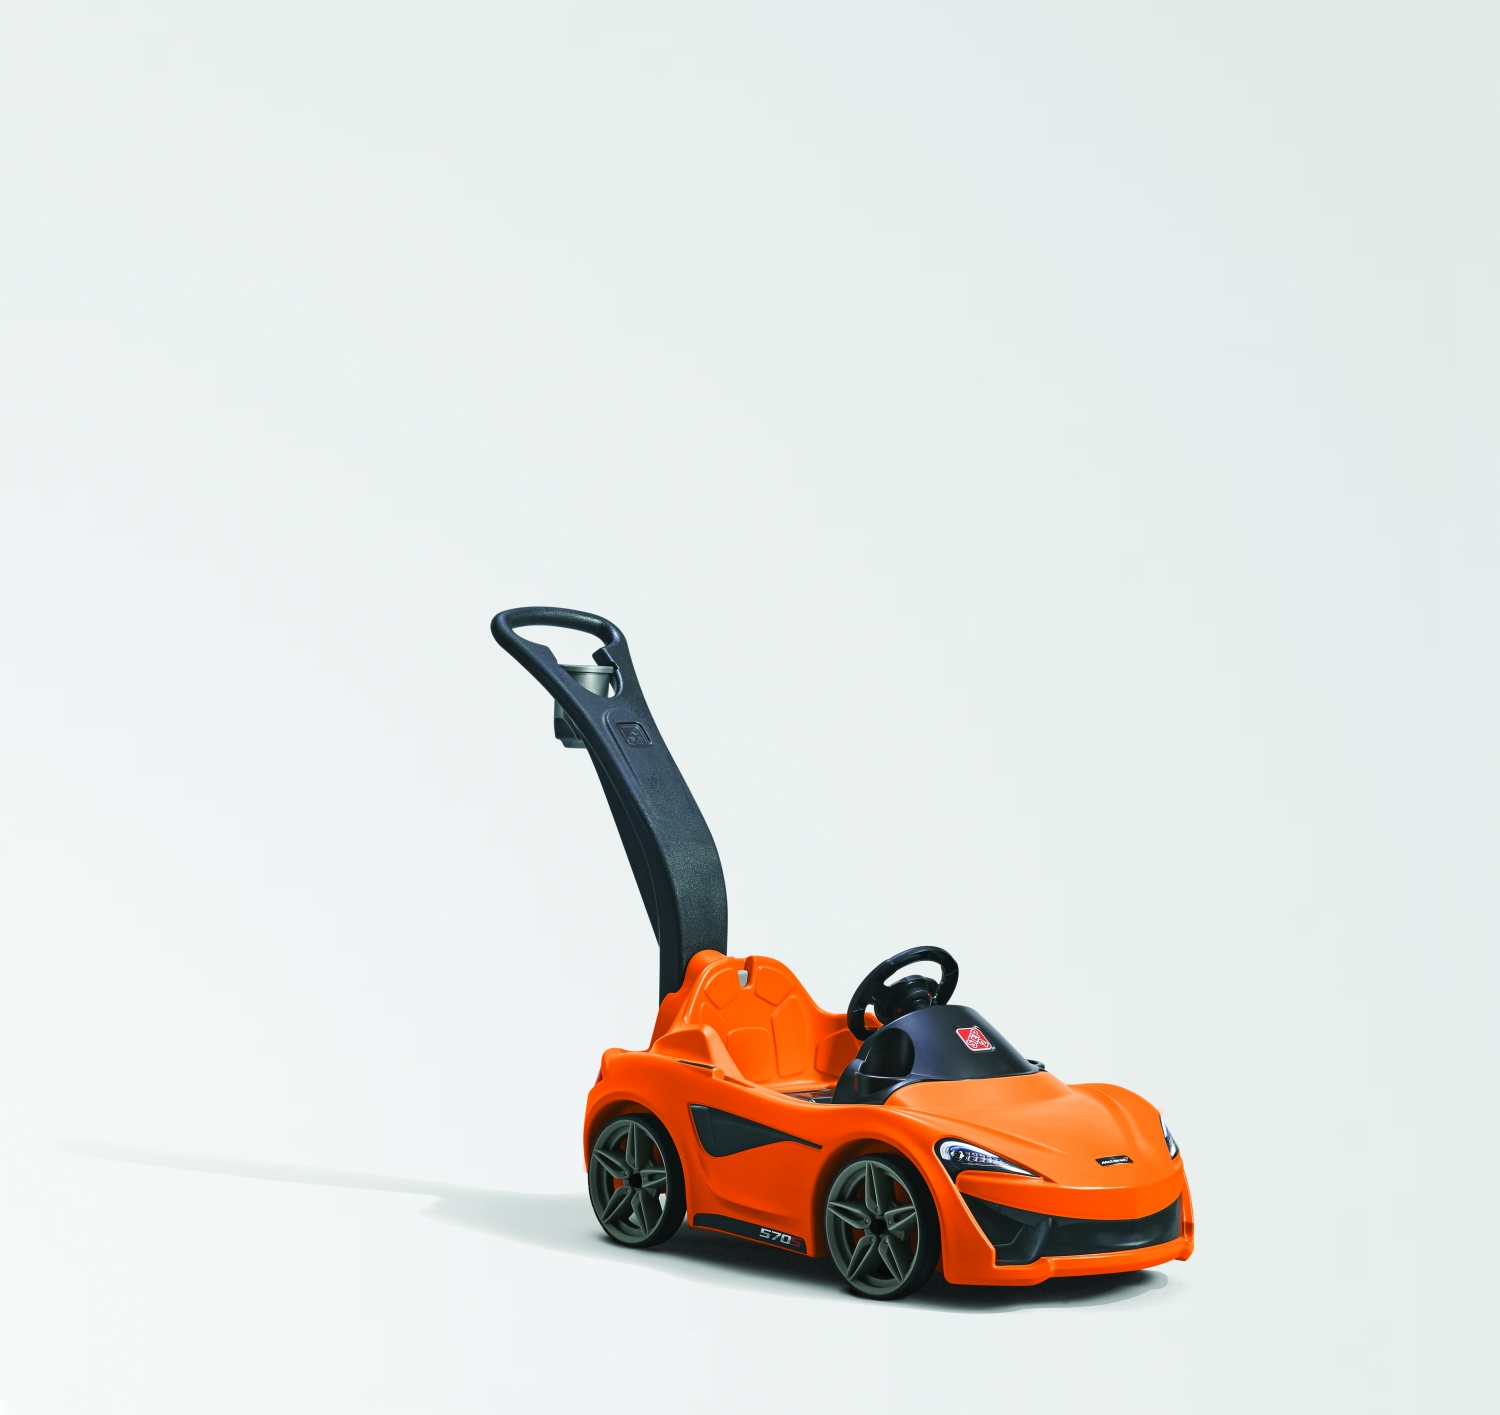 McLaren Automotive takes a new approach to open-top cars